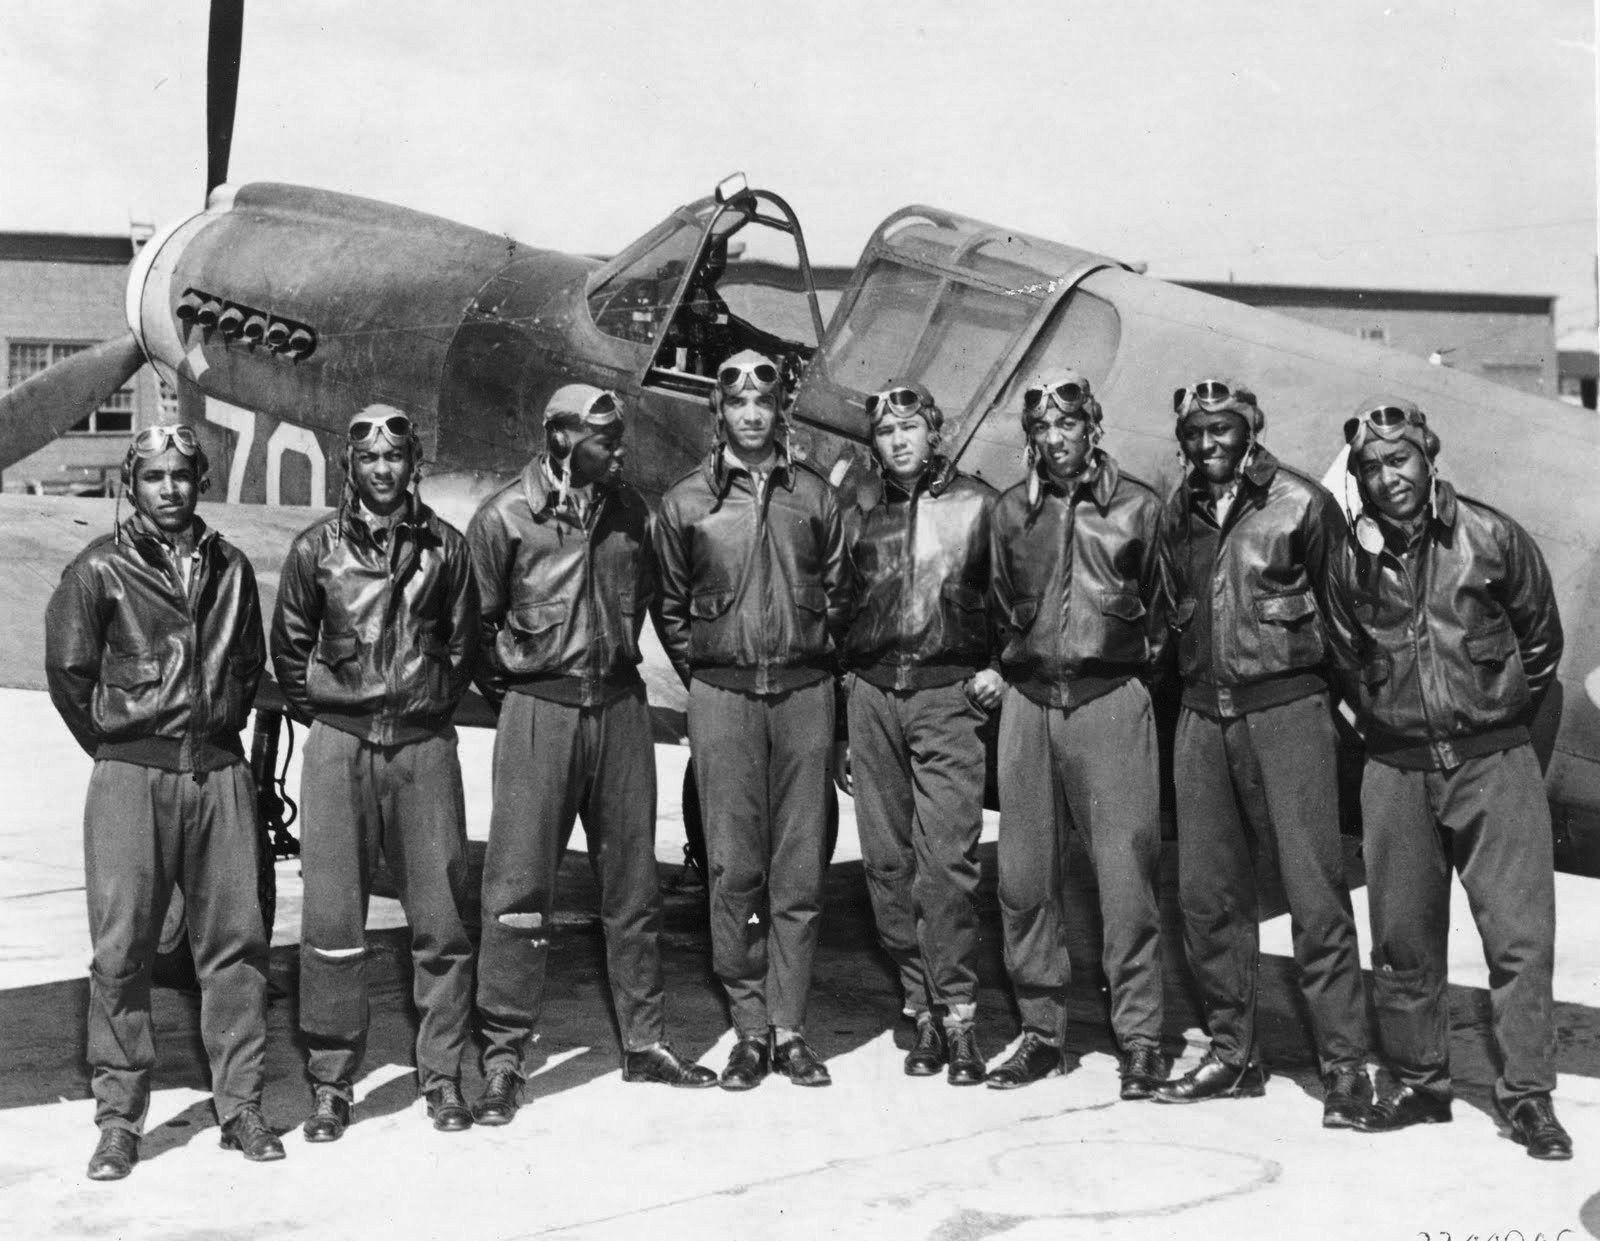 Tuskegee Airmen Public Domain Clip Art Photos and Images.